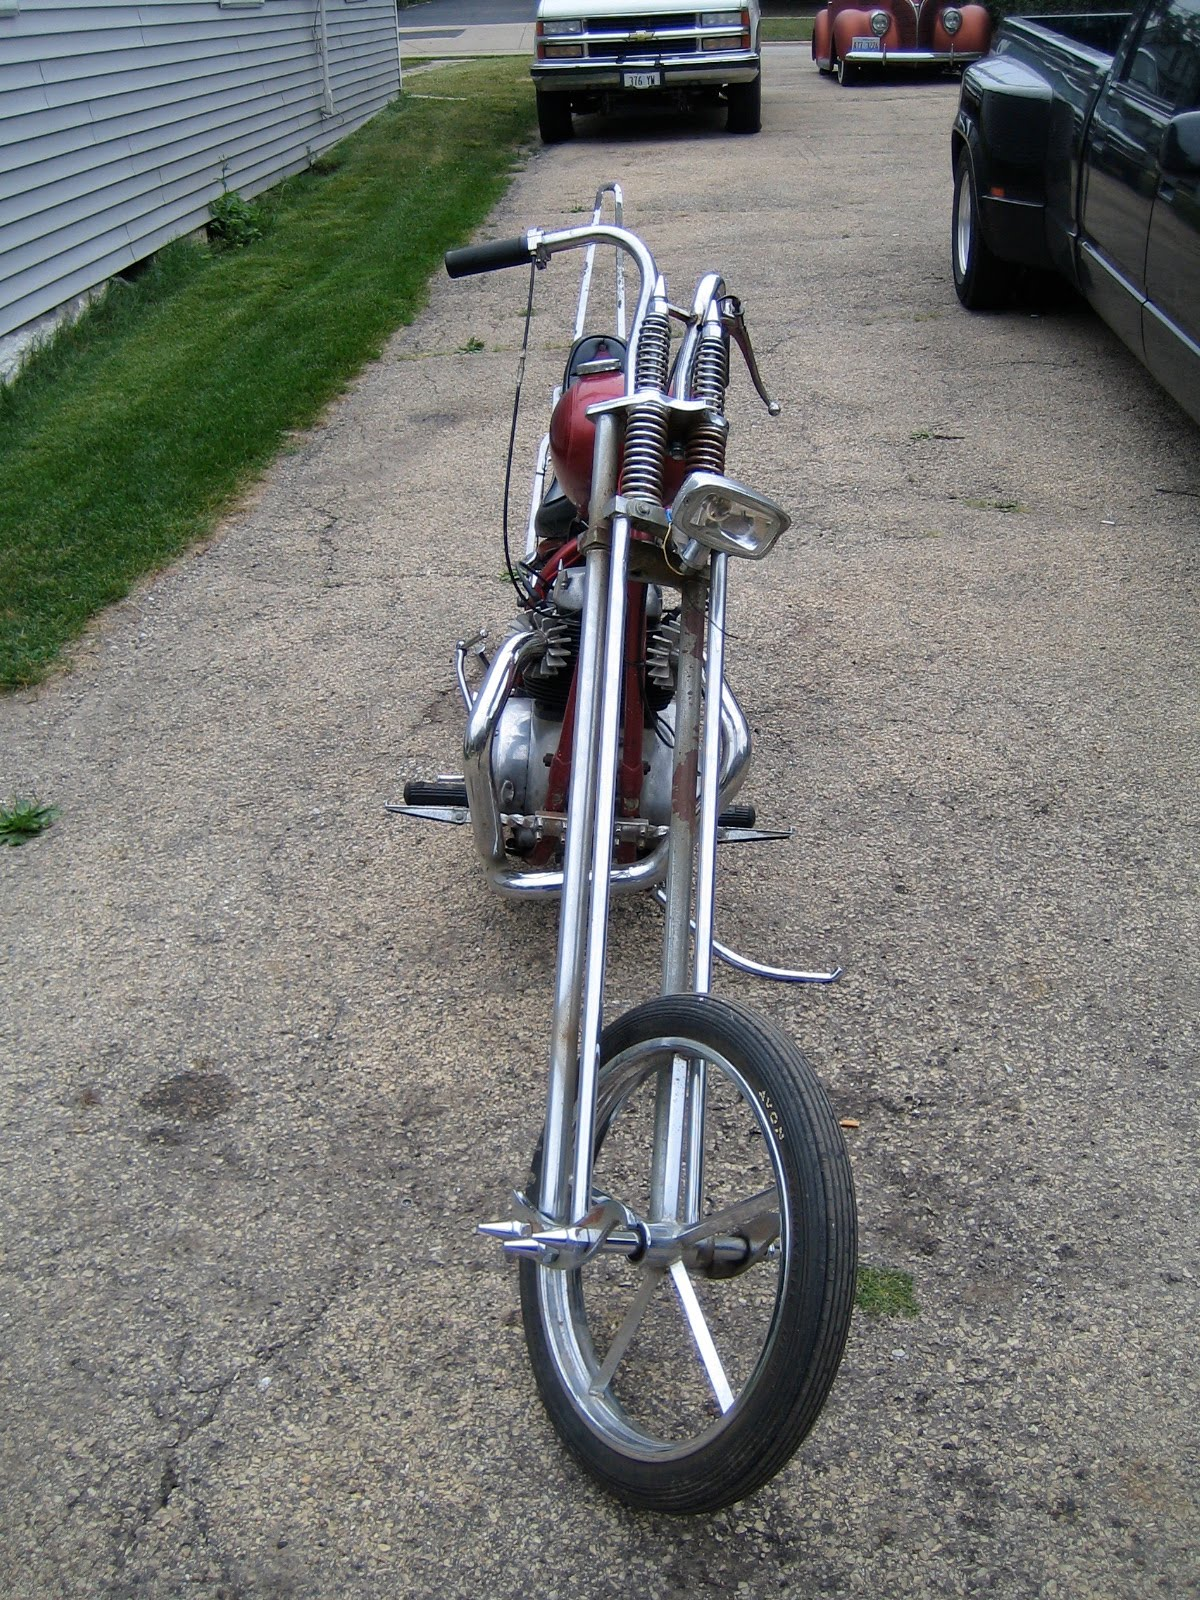 1966 Bsa Chopper Runs And Rides Great Built In The 70 S Call Kyle 847